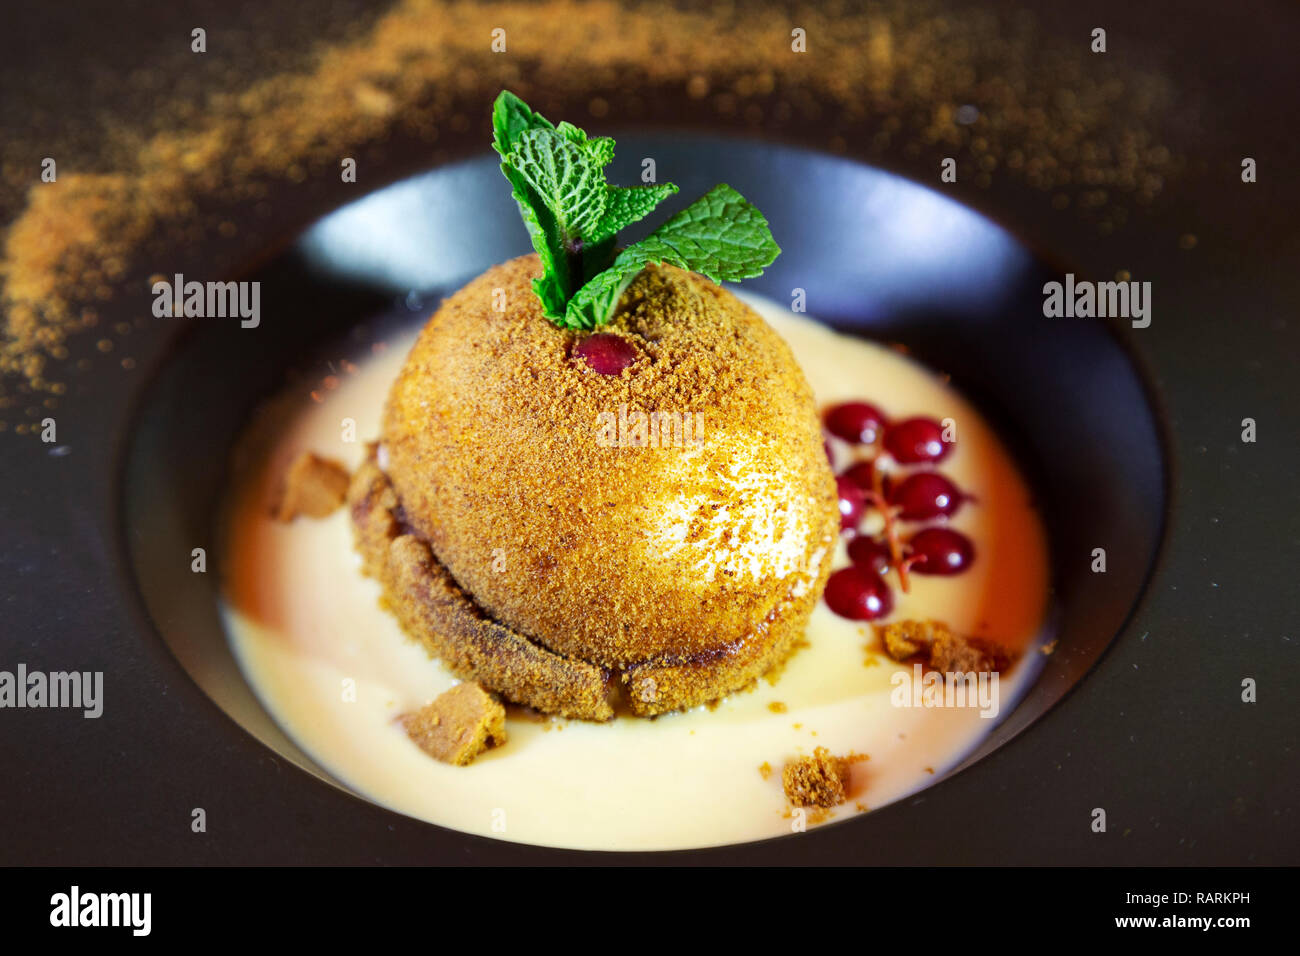 A seasonal pudding, served at Christmastime in Arras, France. The dessert is creatively dressed to look like a pudding and features Spectaculus. - Stock Image